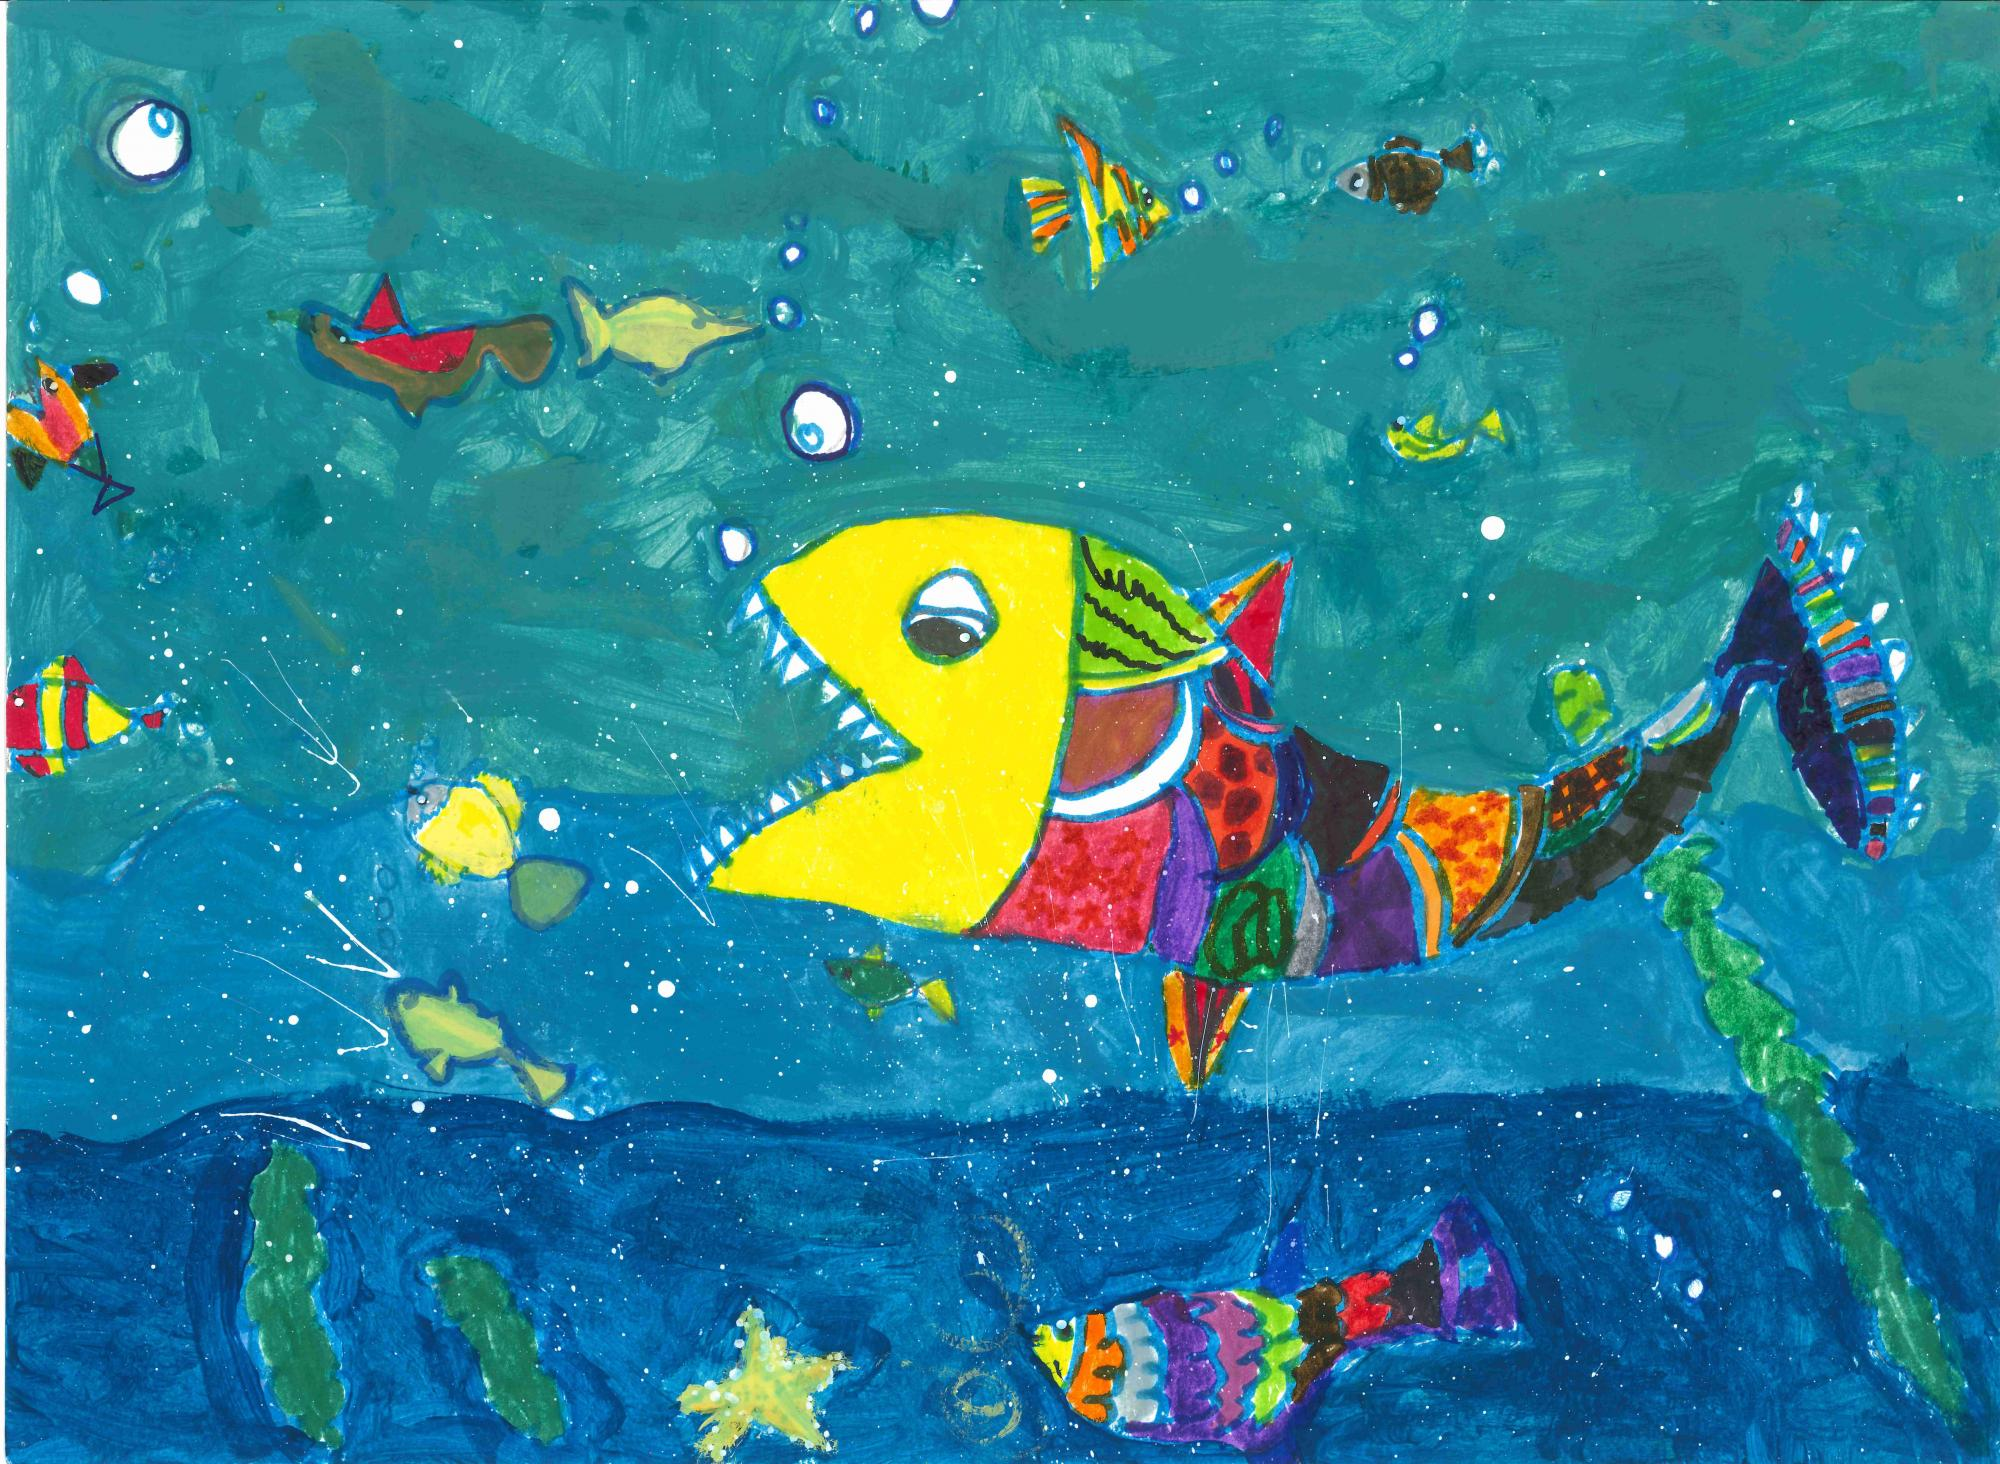 """Colorful Fishes"" Emma Yuan Luo, age 7. Snellville, Georgia. United States. Shijun Art Studio. Teacher: Shijun Munns. River of Words 2018 Finalist."